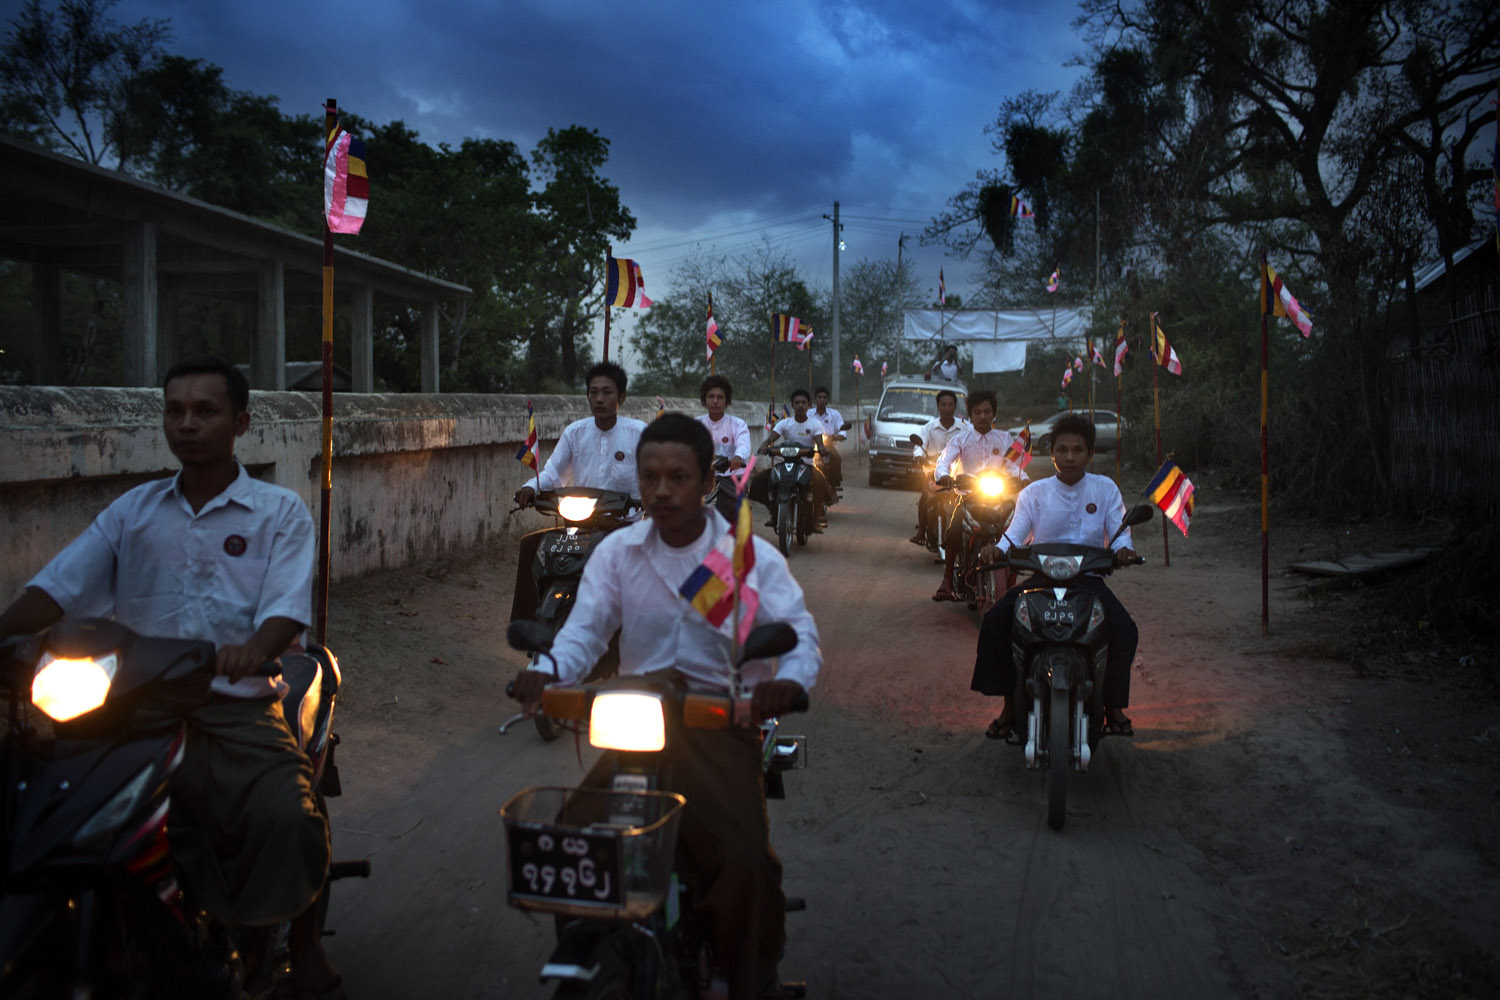 Villagers from Kyaw Min drive ahead of Wirathu's vehicle as he arrives to give a sermon at the Shwe Areleain Monastery in Kyaw Min Village, Myiamu Township, Burma.